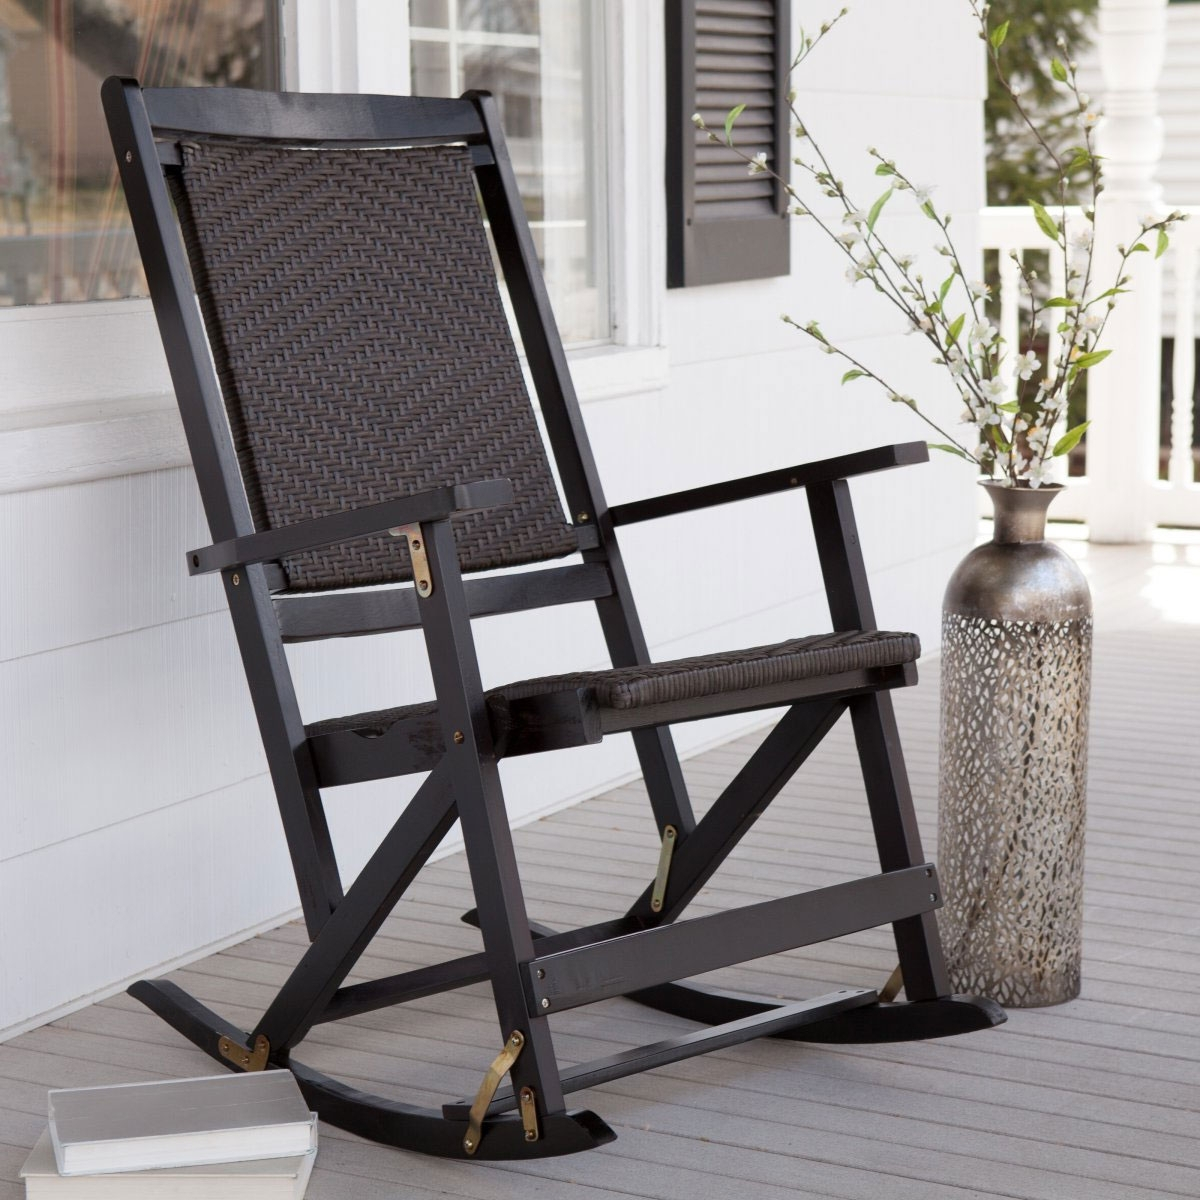 Outdoor Metal Rocking Chair Modern Chairs Quality Interior Lawn In Famous Vintage Metal Rocking Patio Chairs (View 7 of 15)